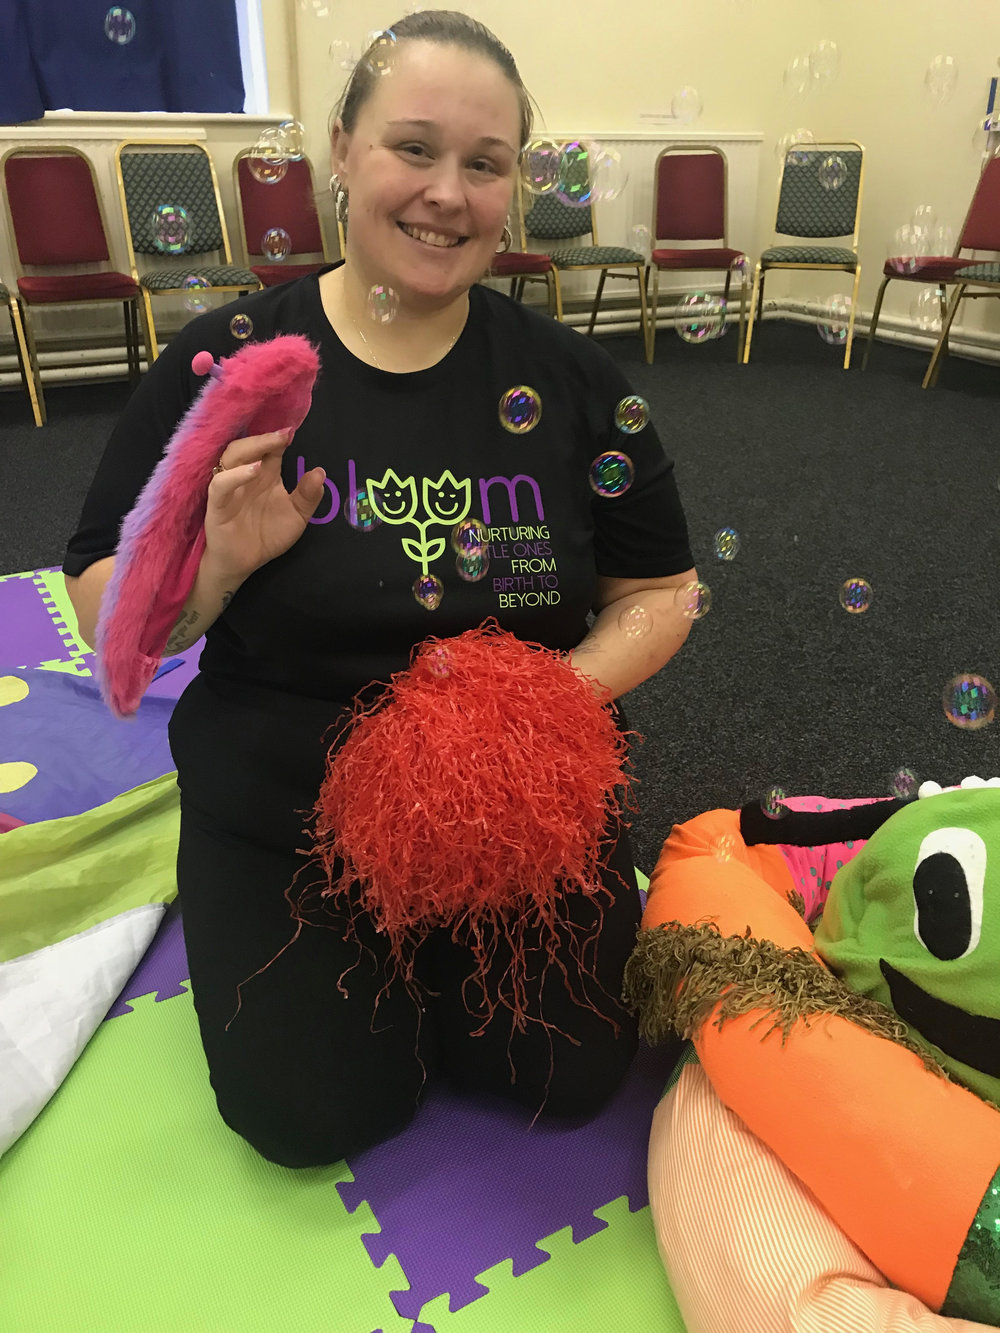 Rachel Mather - Hi my name is Rachel, I'm a mum to Amelia (16 months) and have Qualifications in Childcare. We have been going to Bloom classes for over a year and seeing the difference in my little girl's development has filled my heart so much.I will be running Bloom Tameside from January 2019 and you will be able to join me at classes in Audenshaw, Ashton, Stalybridge, Denton and Dukinfield.I can't wait to meet you all xx